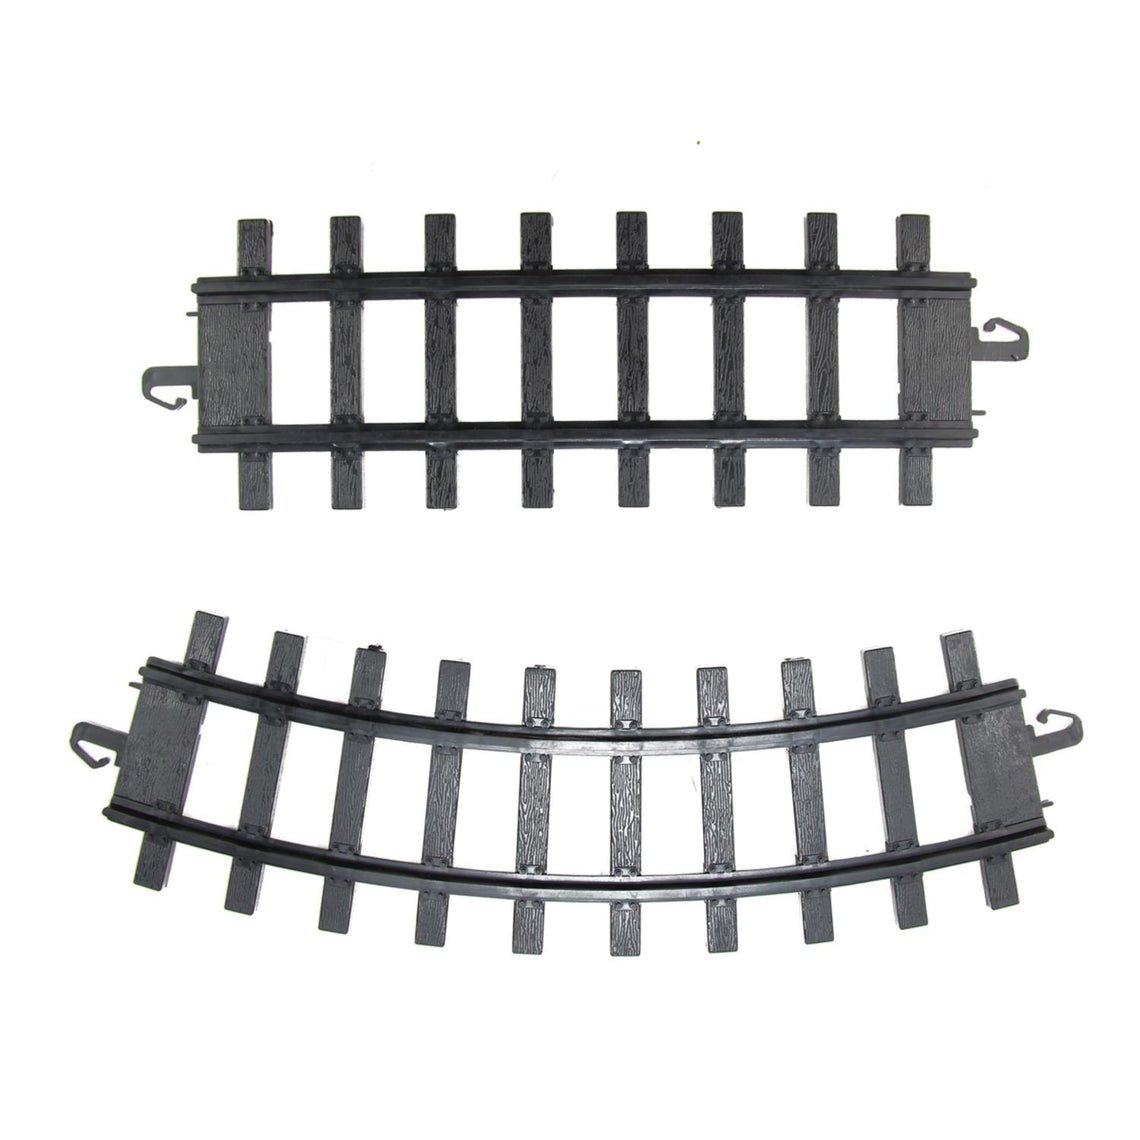 Pack of 12 Black Replacement Train Set Track Pieces - 4